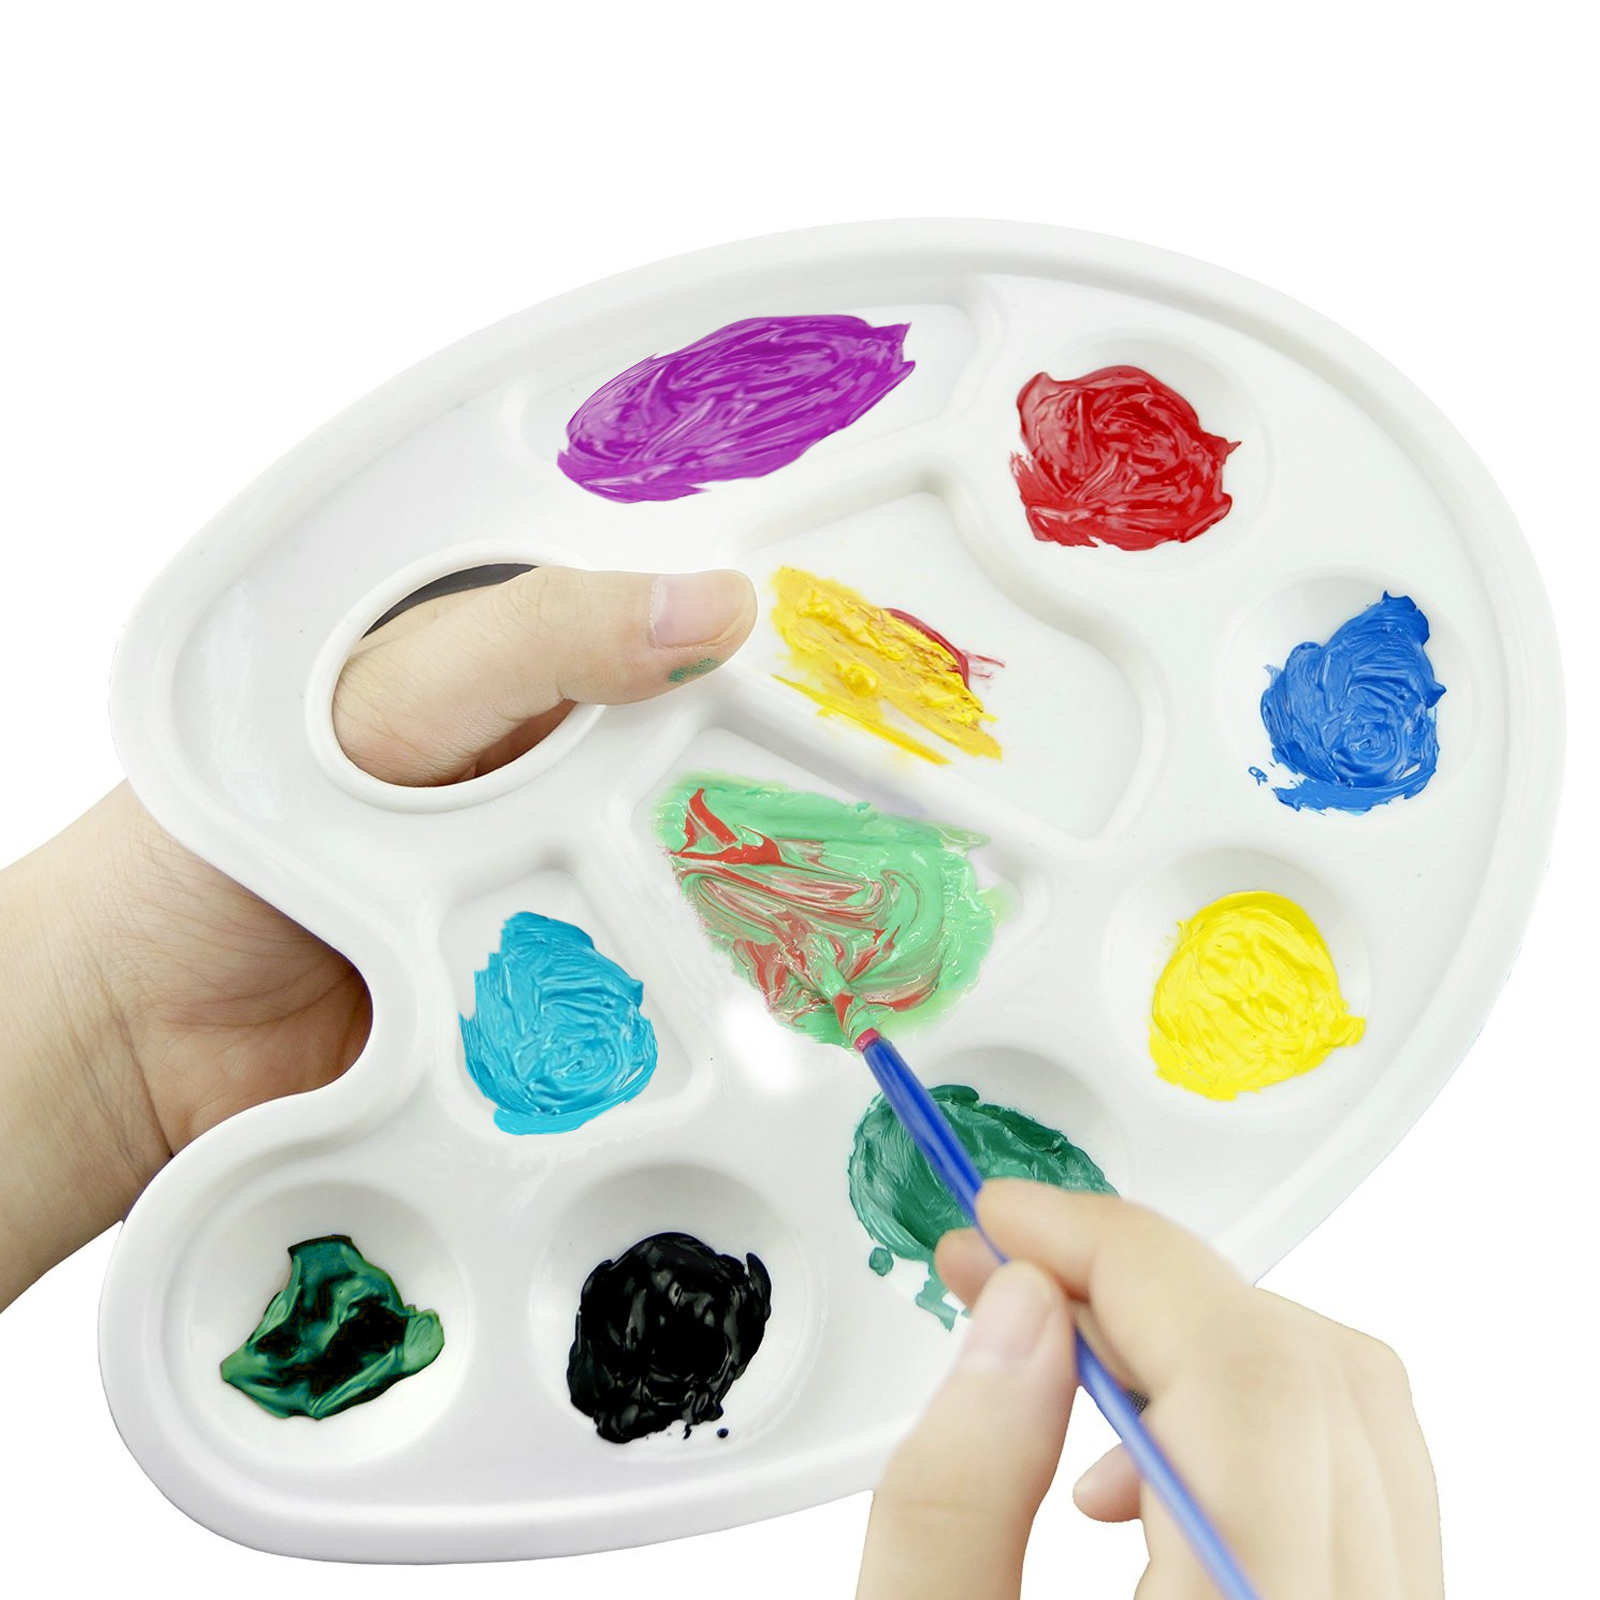 12pk plastic paint oval tray artist water color painting drawing supply 10 wells - Color Tray